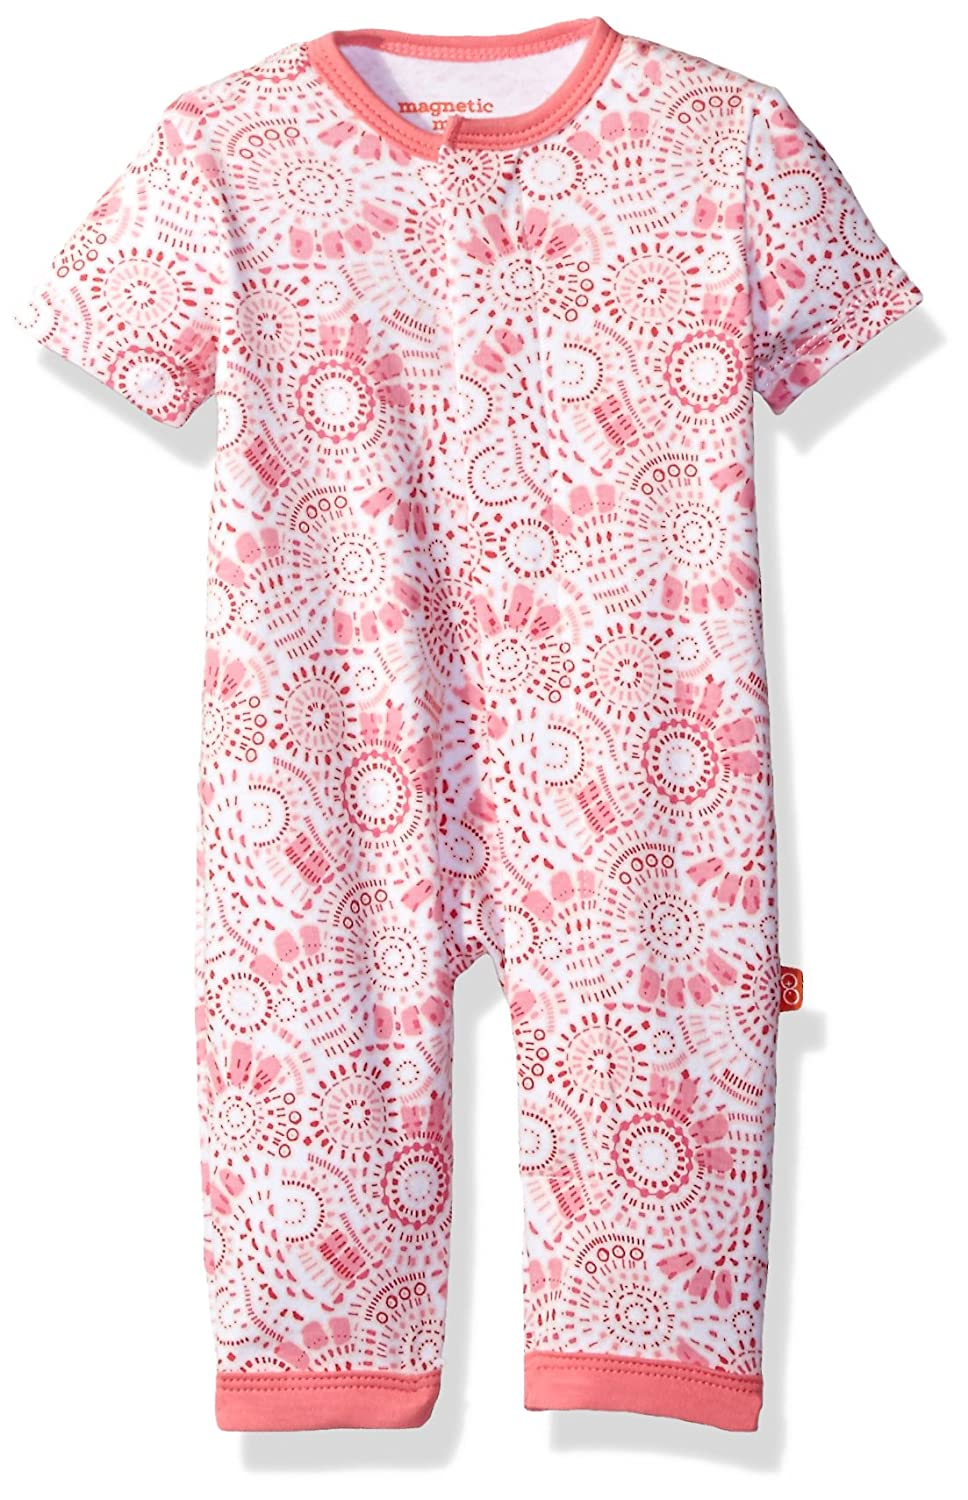 Magnificent Baby Baby Boys Magnetic Coverall